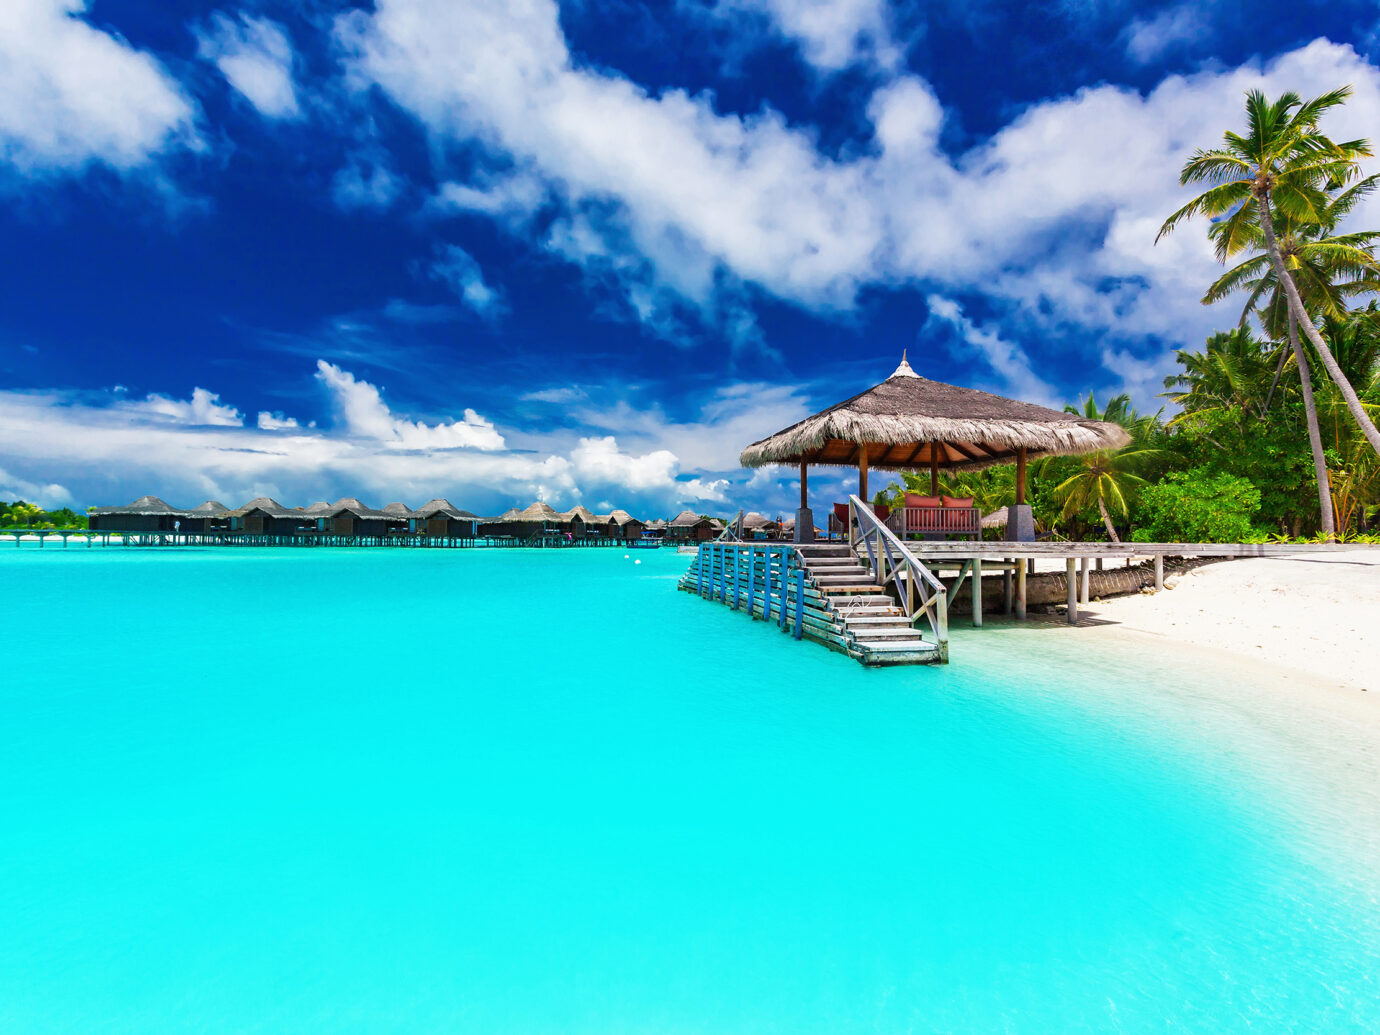 Jetty and palm trees with steps into amazing tropical blue lagoon